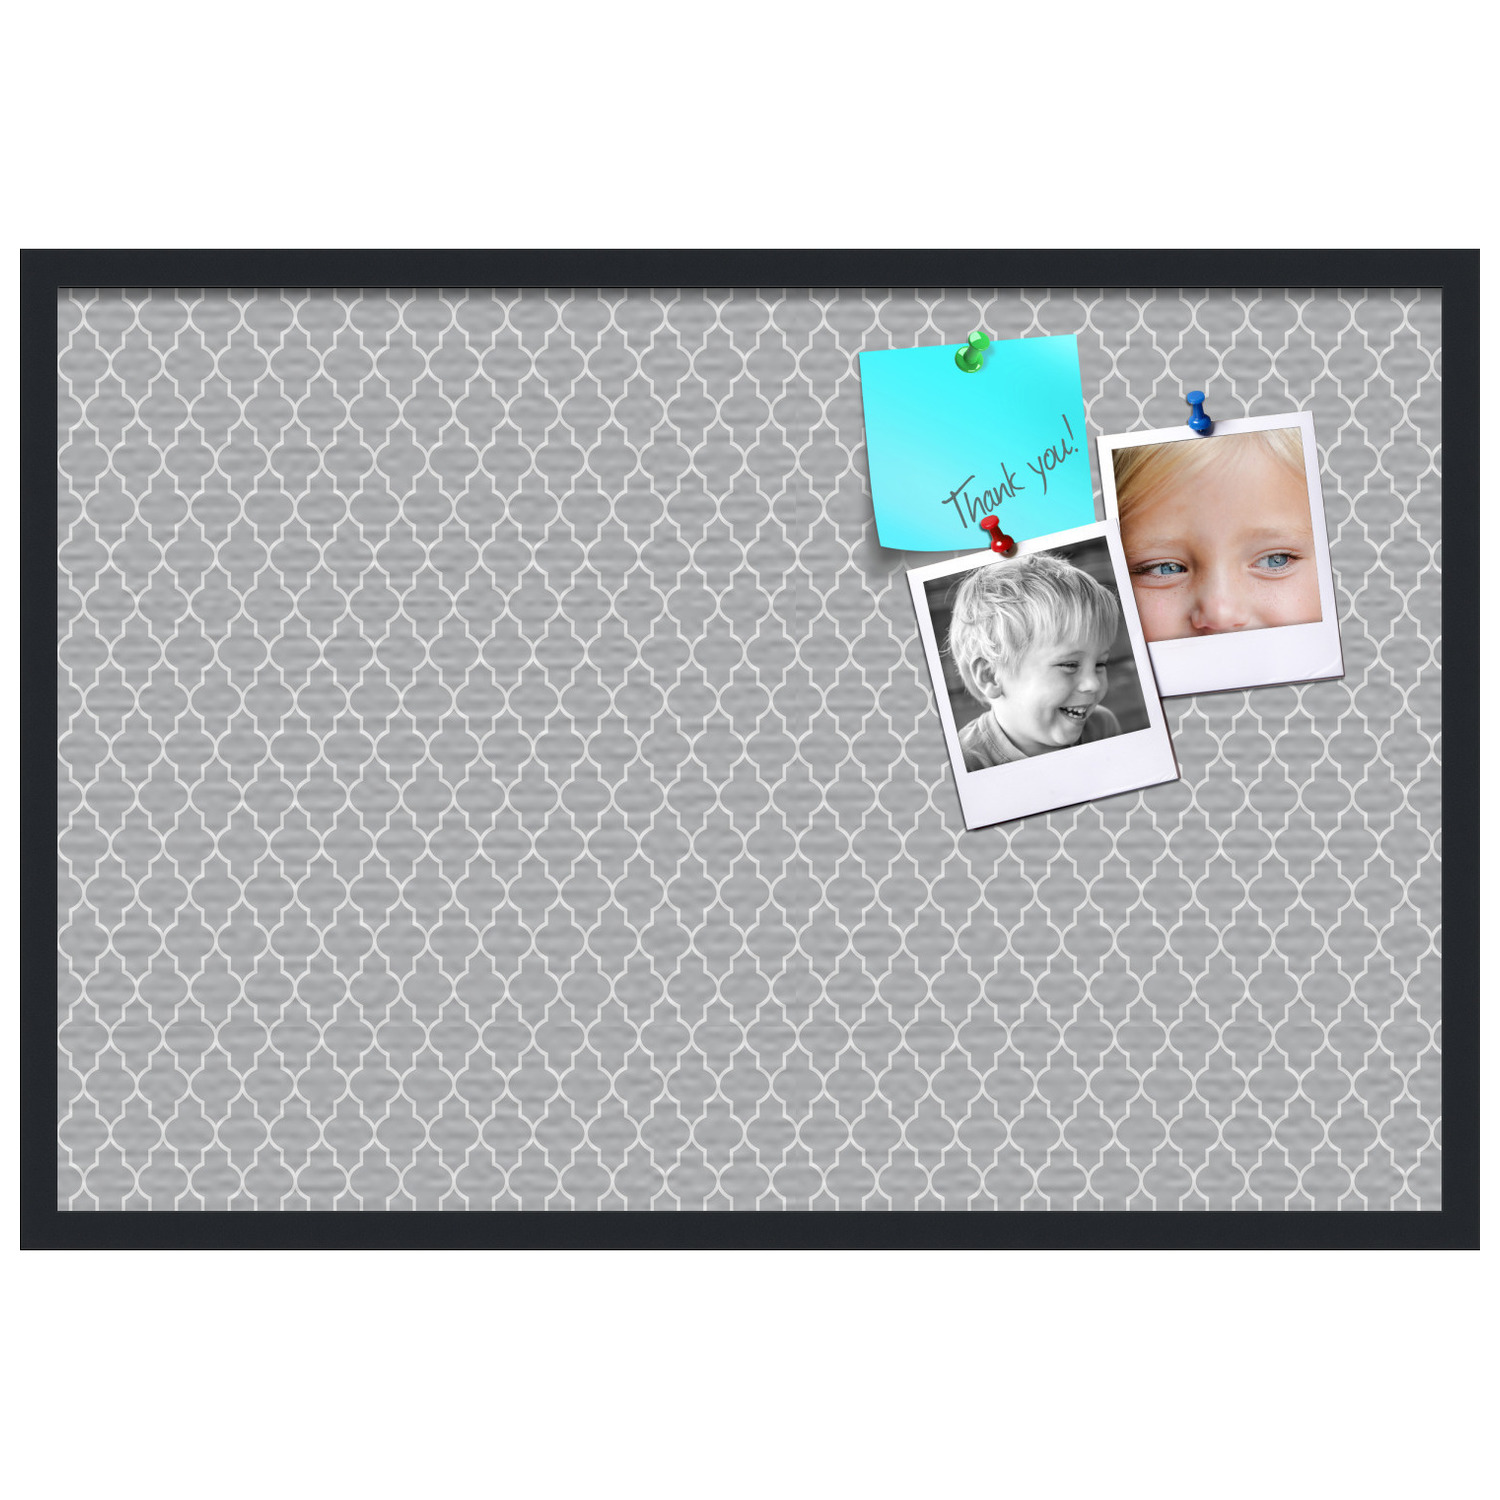 PinPix-627 Printed at 16x16 Inches and Framed in Satin Black PinPix Decorative pin Cork Bulletin Board Made from Canvas